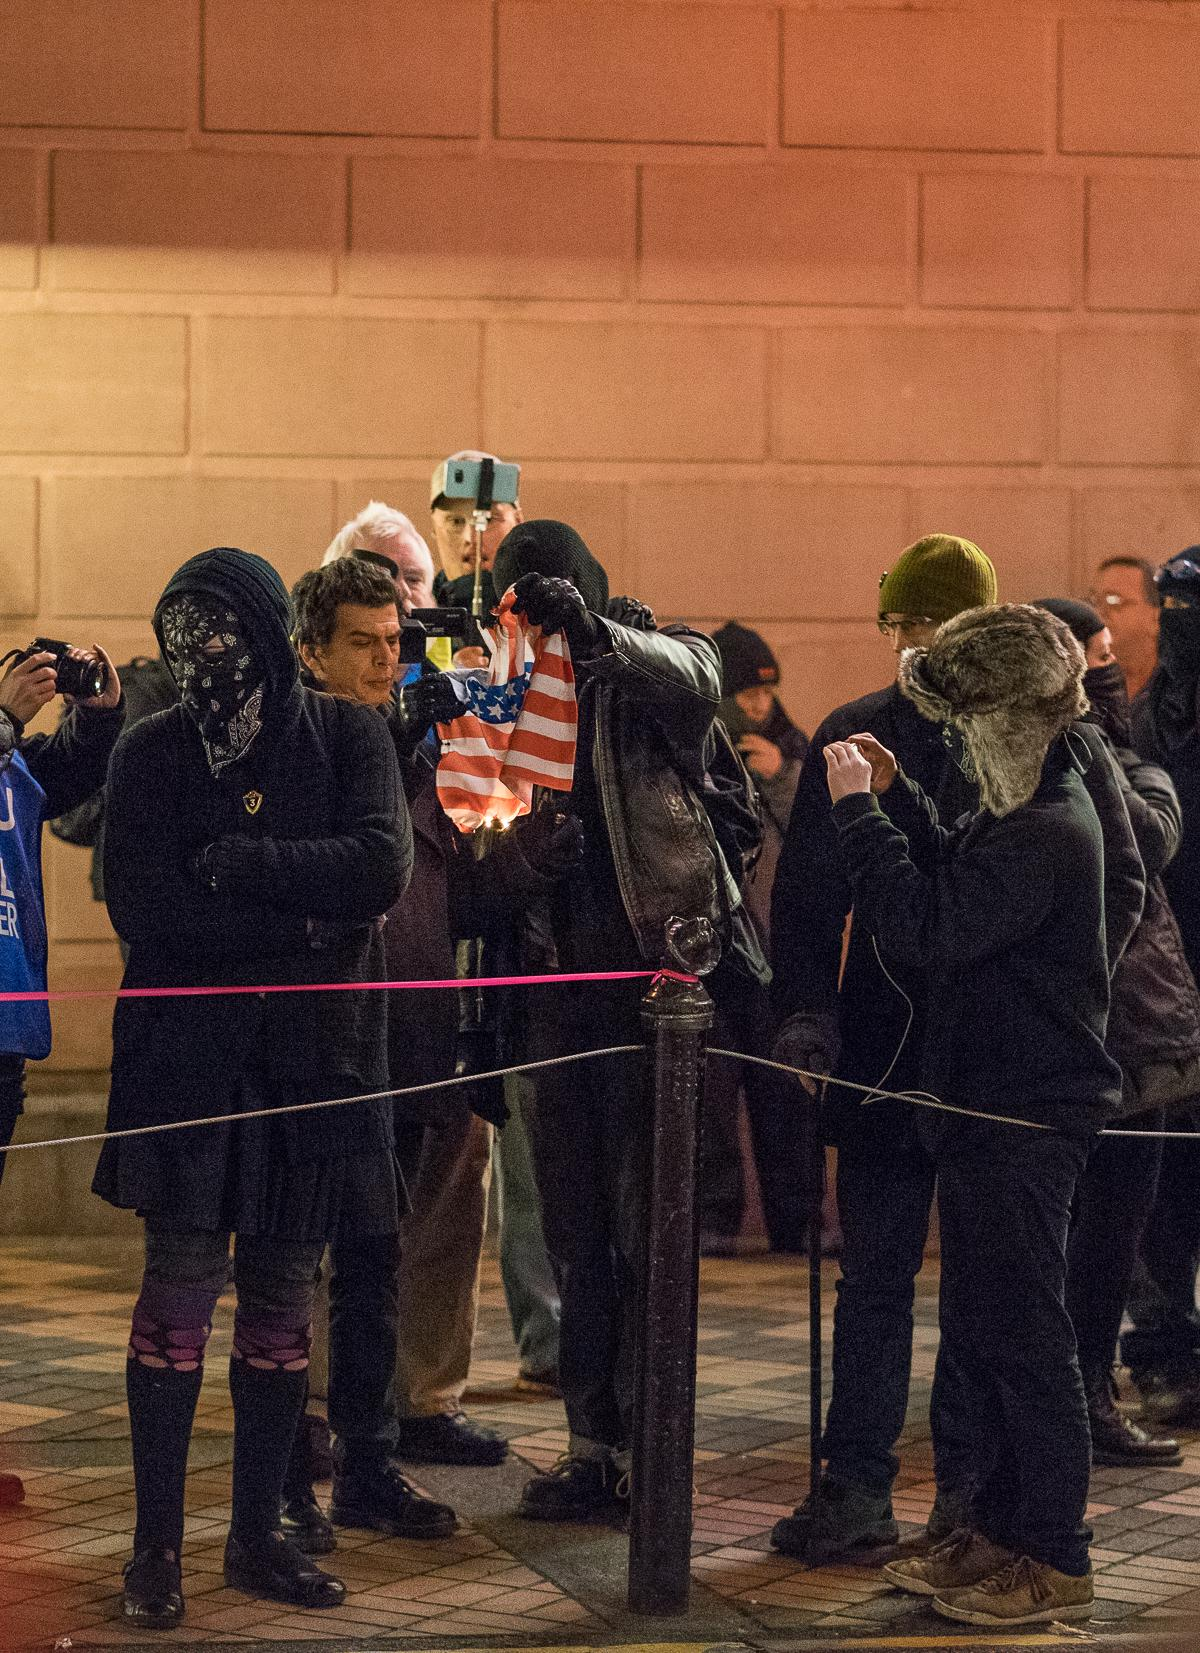 Antifa counter-protesters attempt to ignite an American flag. The alt-right group Patriot Prayer protested Hillary Clinton's Portland speaking engagement outside the Arlene Schnitzer Concert Hall on Tuesday, December 12. Their demonstration was met with a counter-protest by Antifa, and the two groups traded insults and jeers across SW Main Street from 6:00 p.m. until the event's conclusion at approximately 9:30 p.m. Throughout the evening, both Patriot Prayer and Antifa sporadically marched around the theater. At least one scuffle occurred during one such march. Photo by Kit MacAvoy, Oregon News Lab